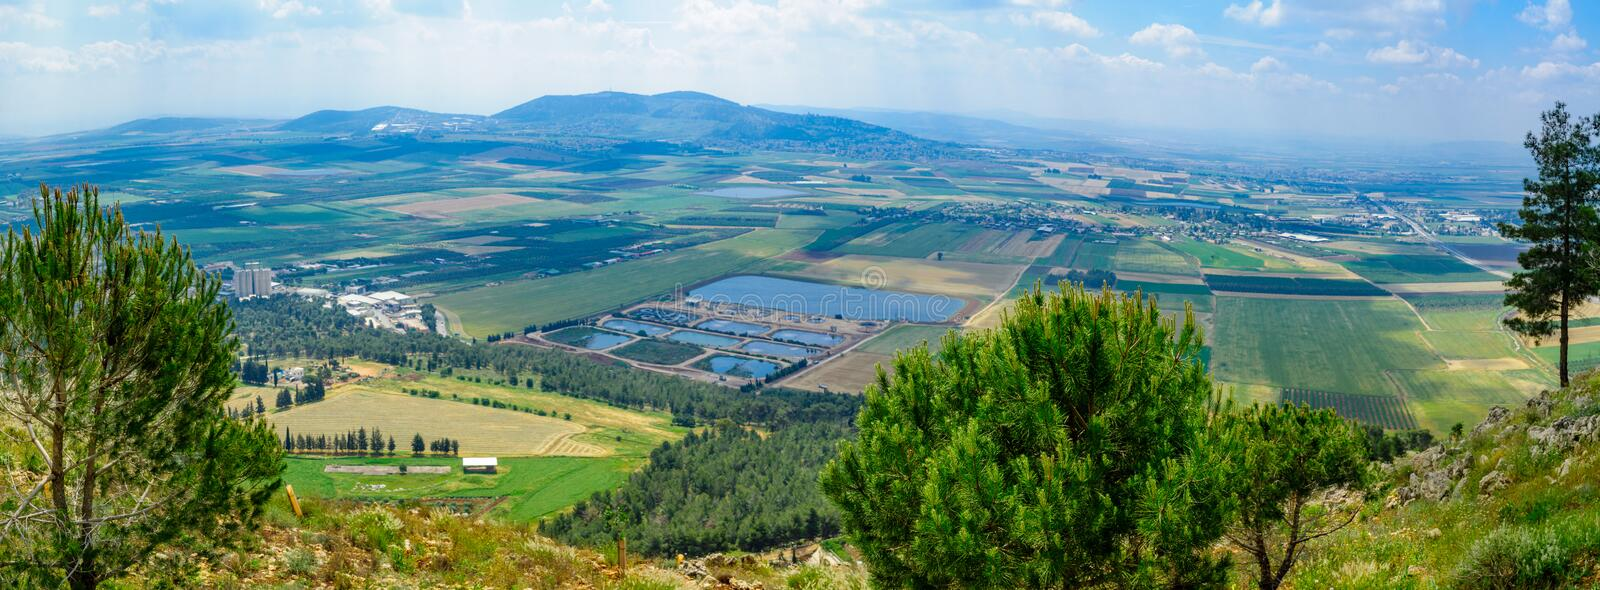 Jezreel Valley landscape, viewed from Mount Precipice stock image